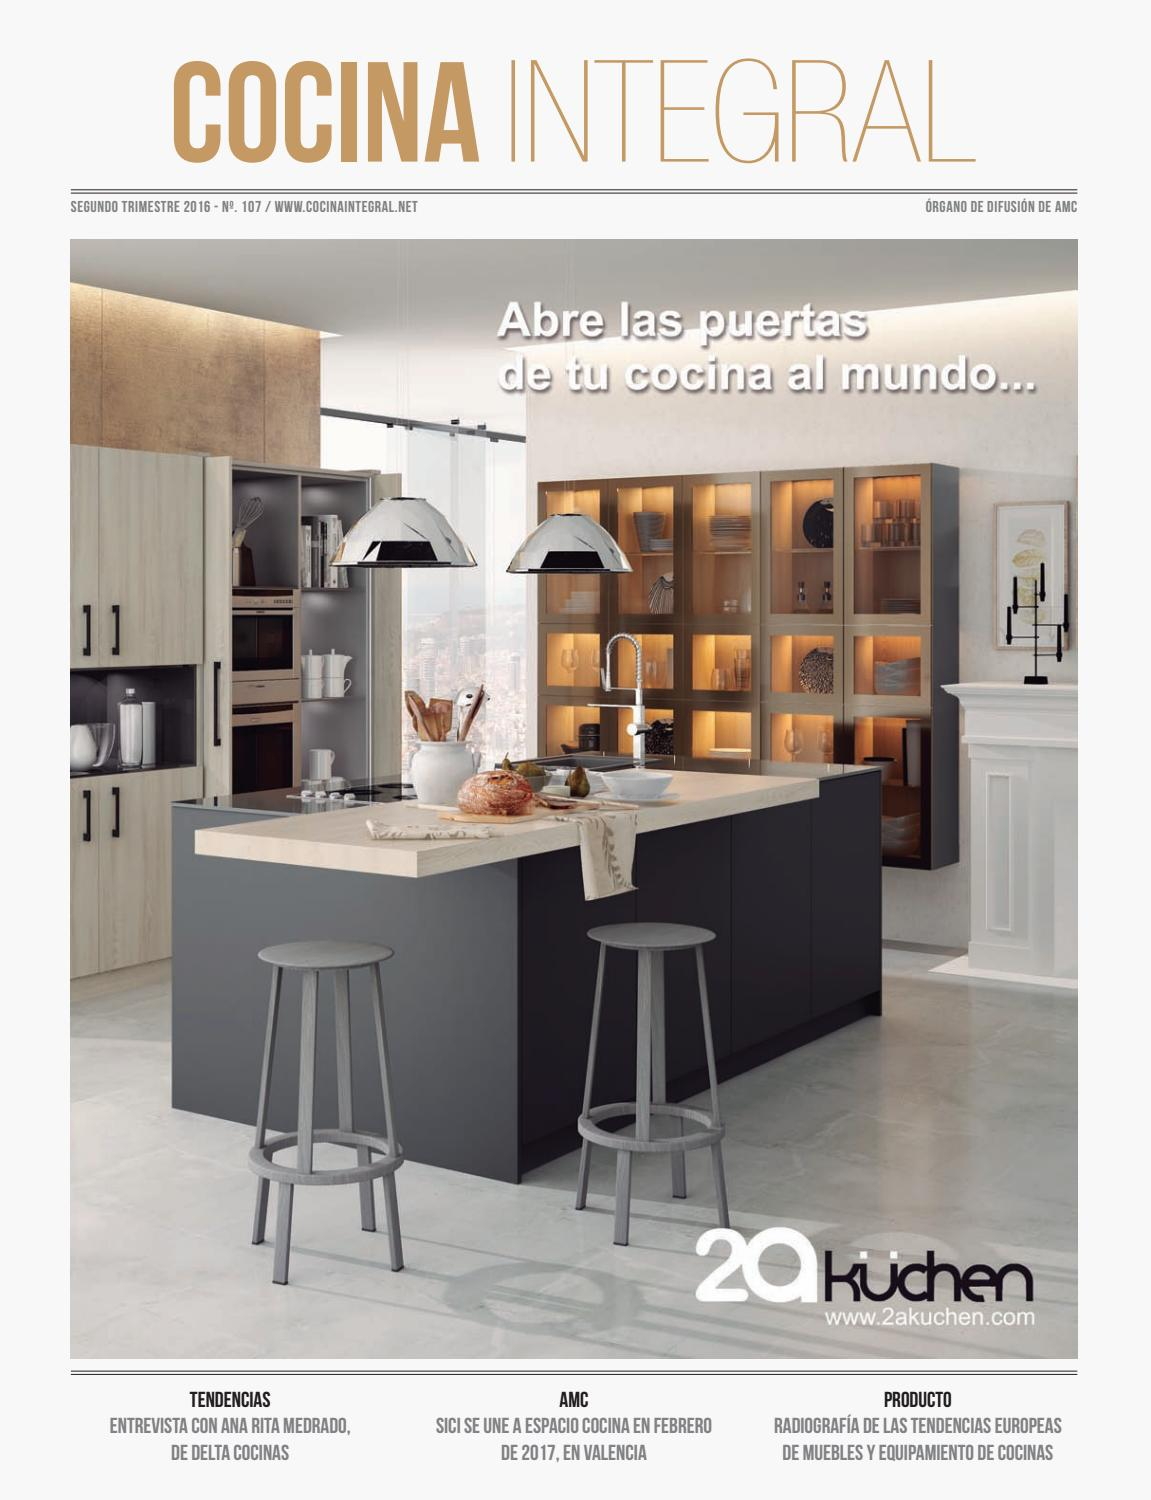 Cocina integral 107 by cocinaintegral issuu for Cocinas en hiraoka 2016